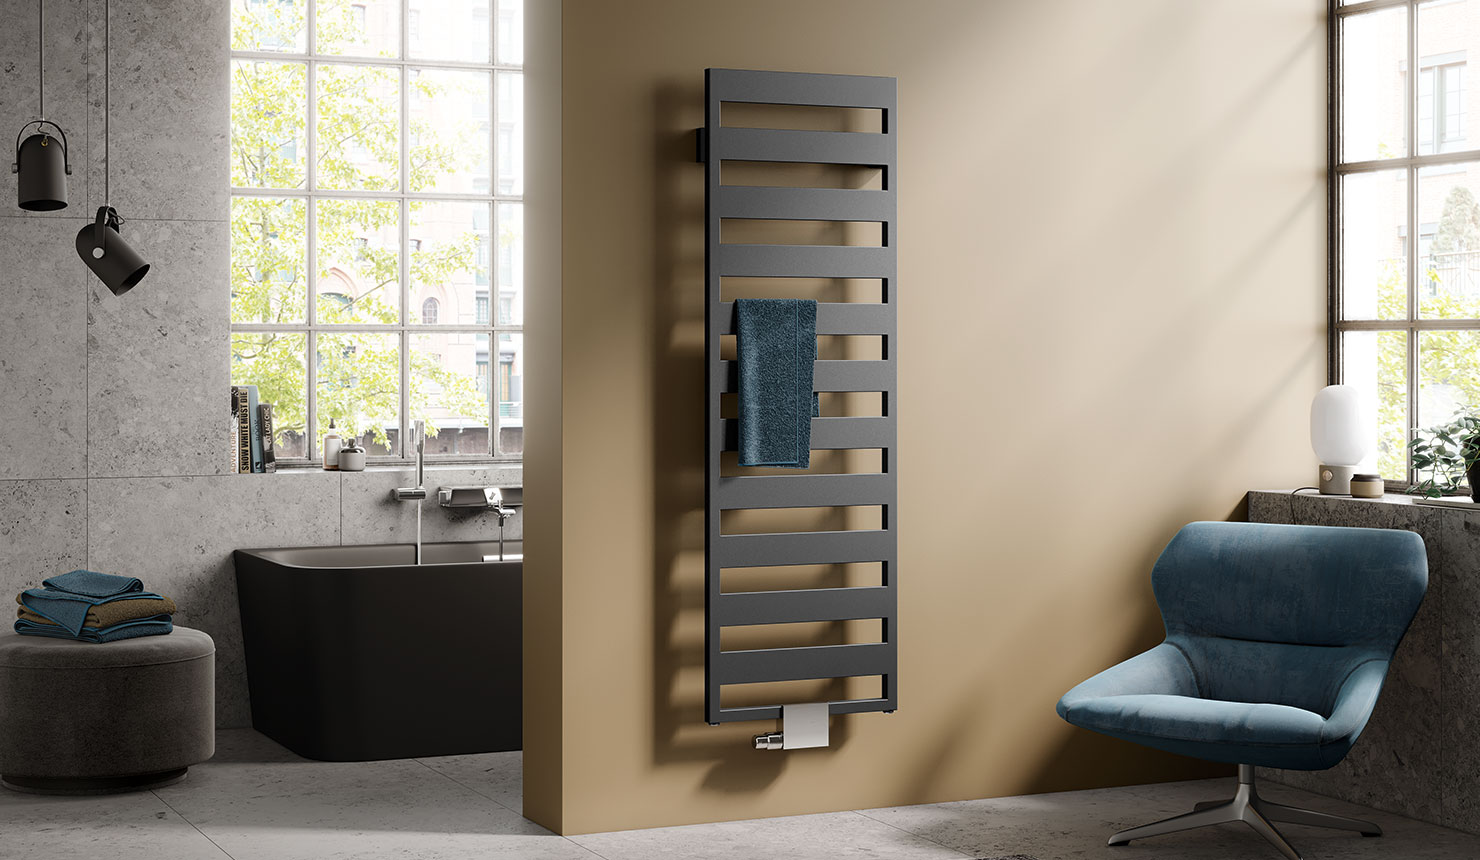 Kermi Casteo design and bathroom radiator in matt bronze finish in modern bathroom